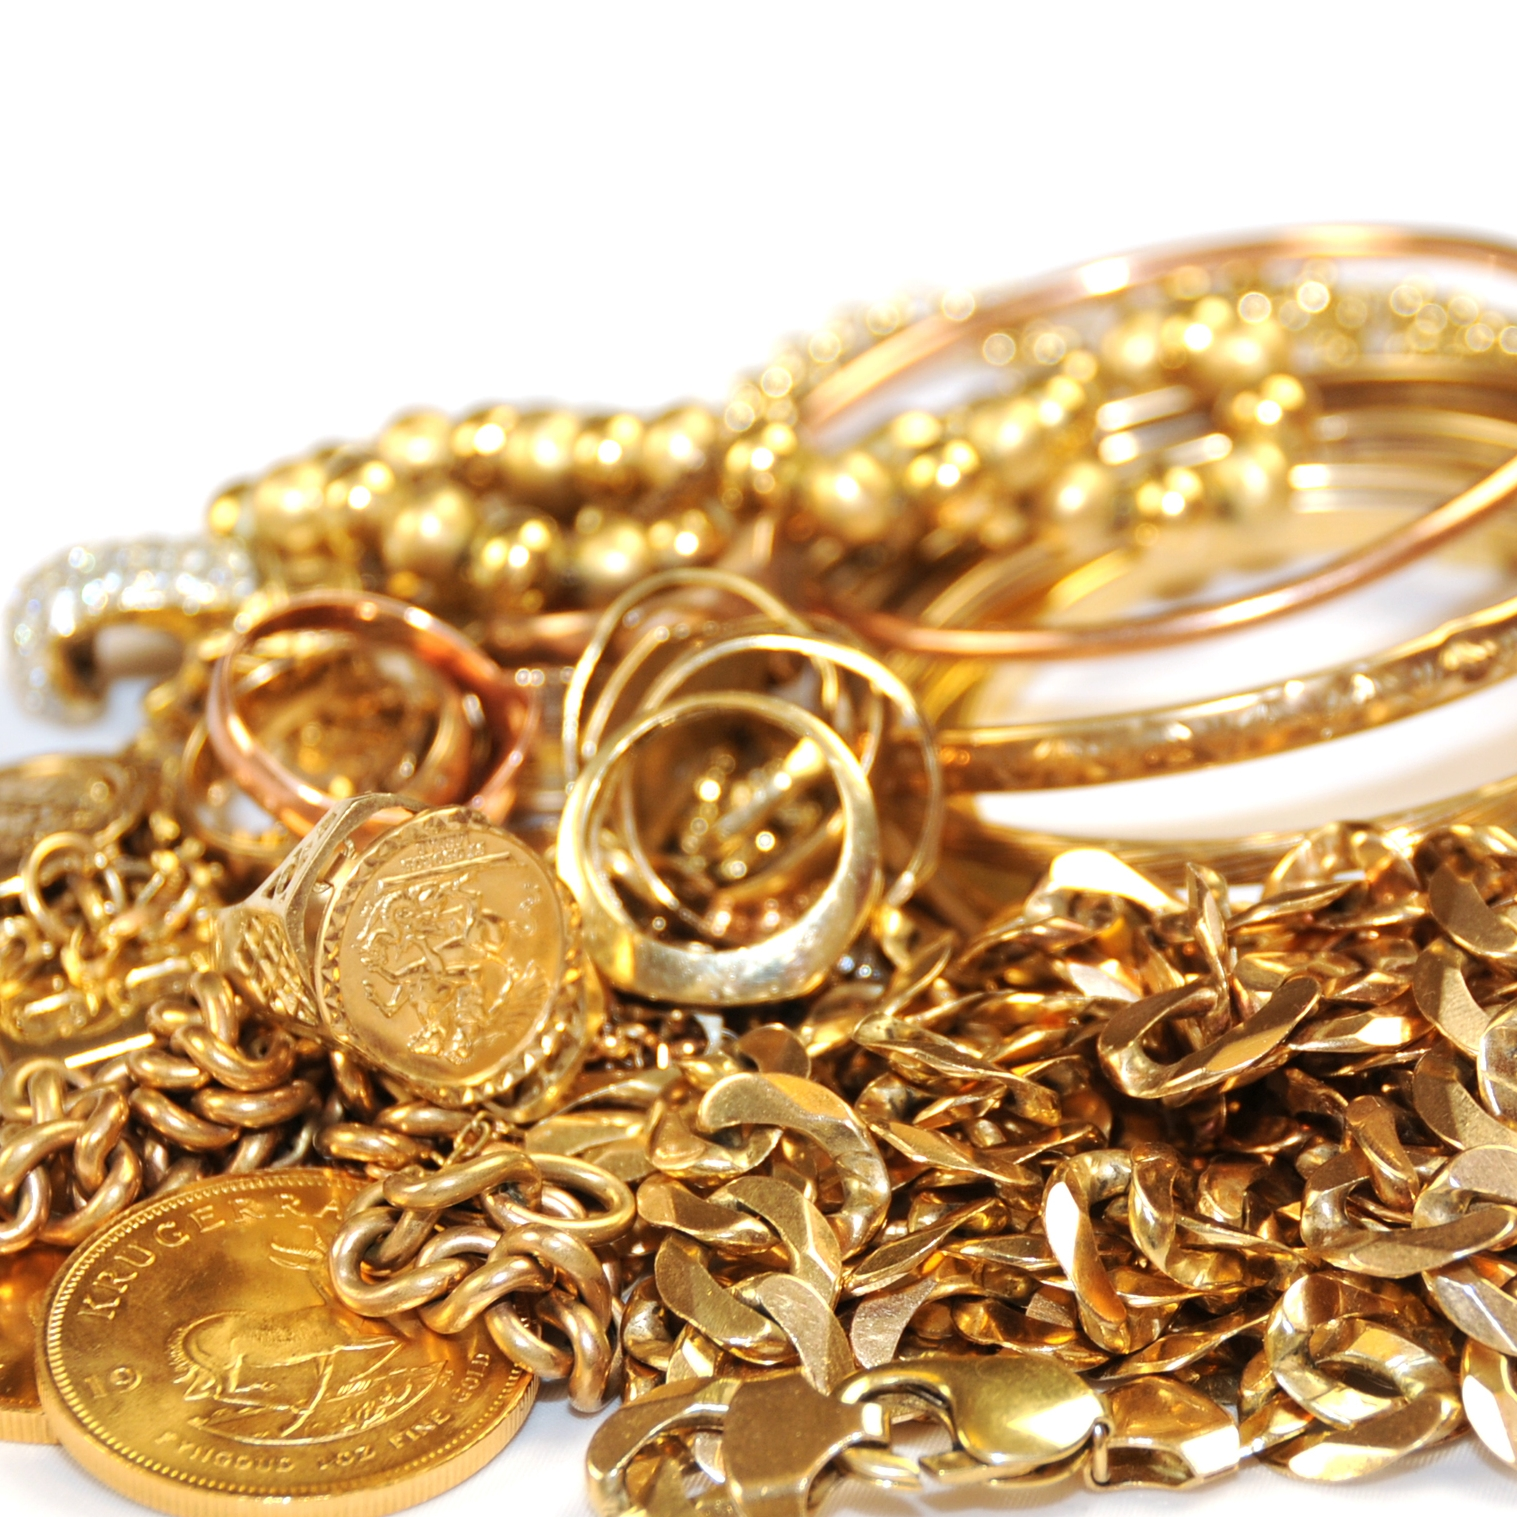 gold buy sell debranf jewelry miami antique diamond metal gemstones coins silver used cash business gia certified logo compra de oro miami florida chatarra scrap gems silver plata diamantes gemas broken antiques sterling silver watches candleholders emeralds aquamarine teapots dishes pocket watch